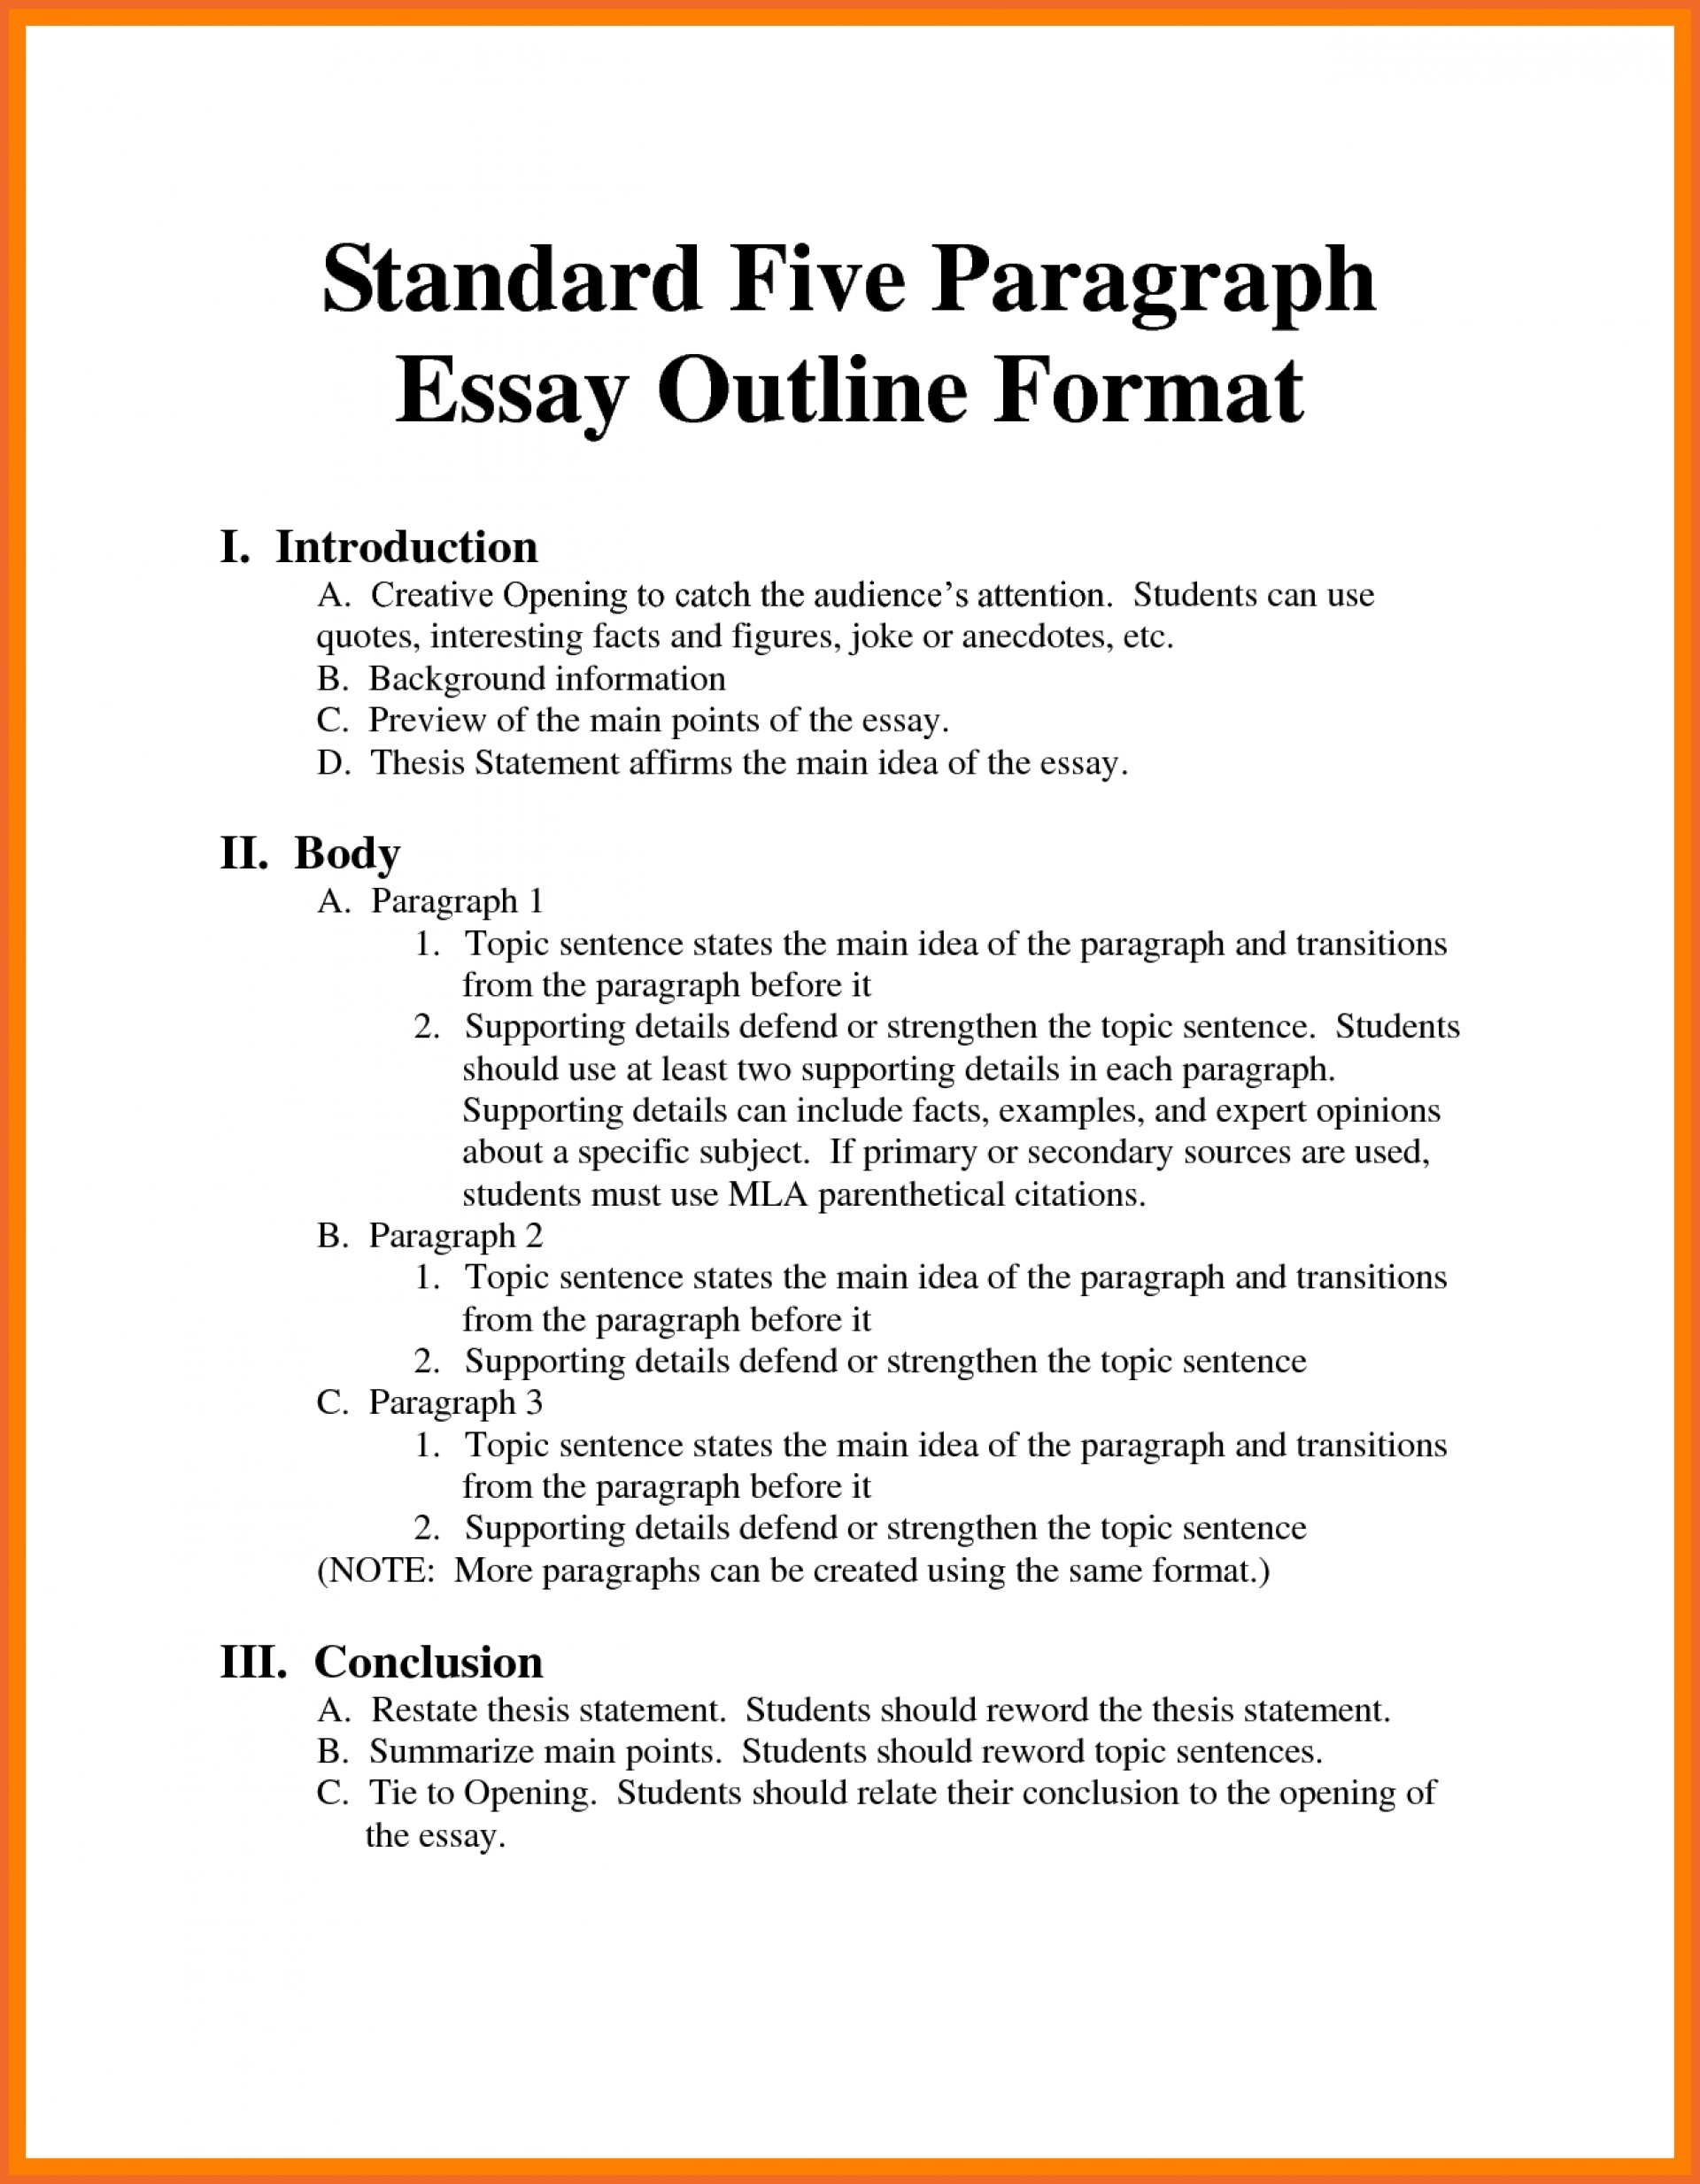 013 Ideas Collection Mlamat Outline Cute Sample Research Paper Of Incredible Mla Format For Template 1920